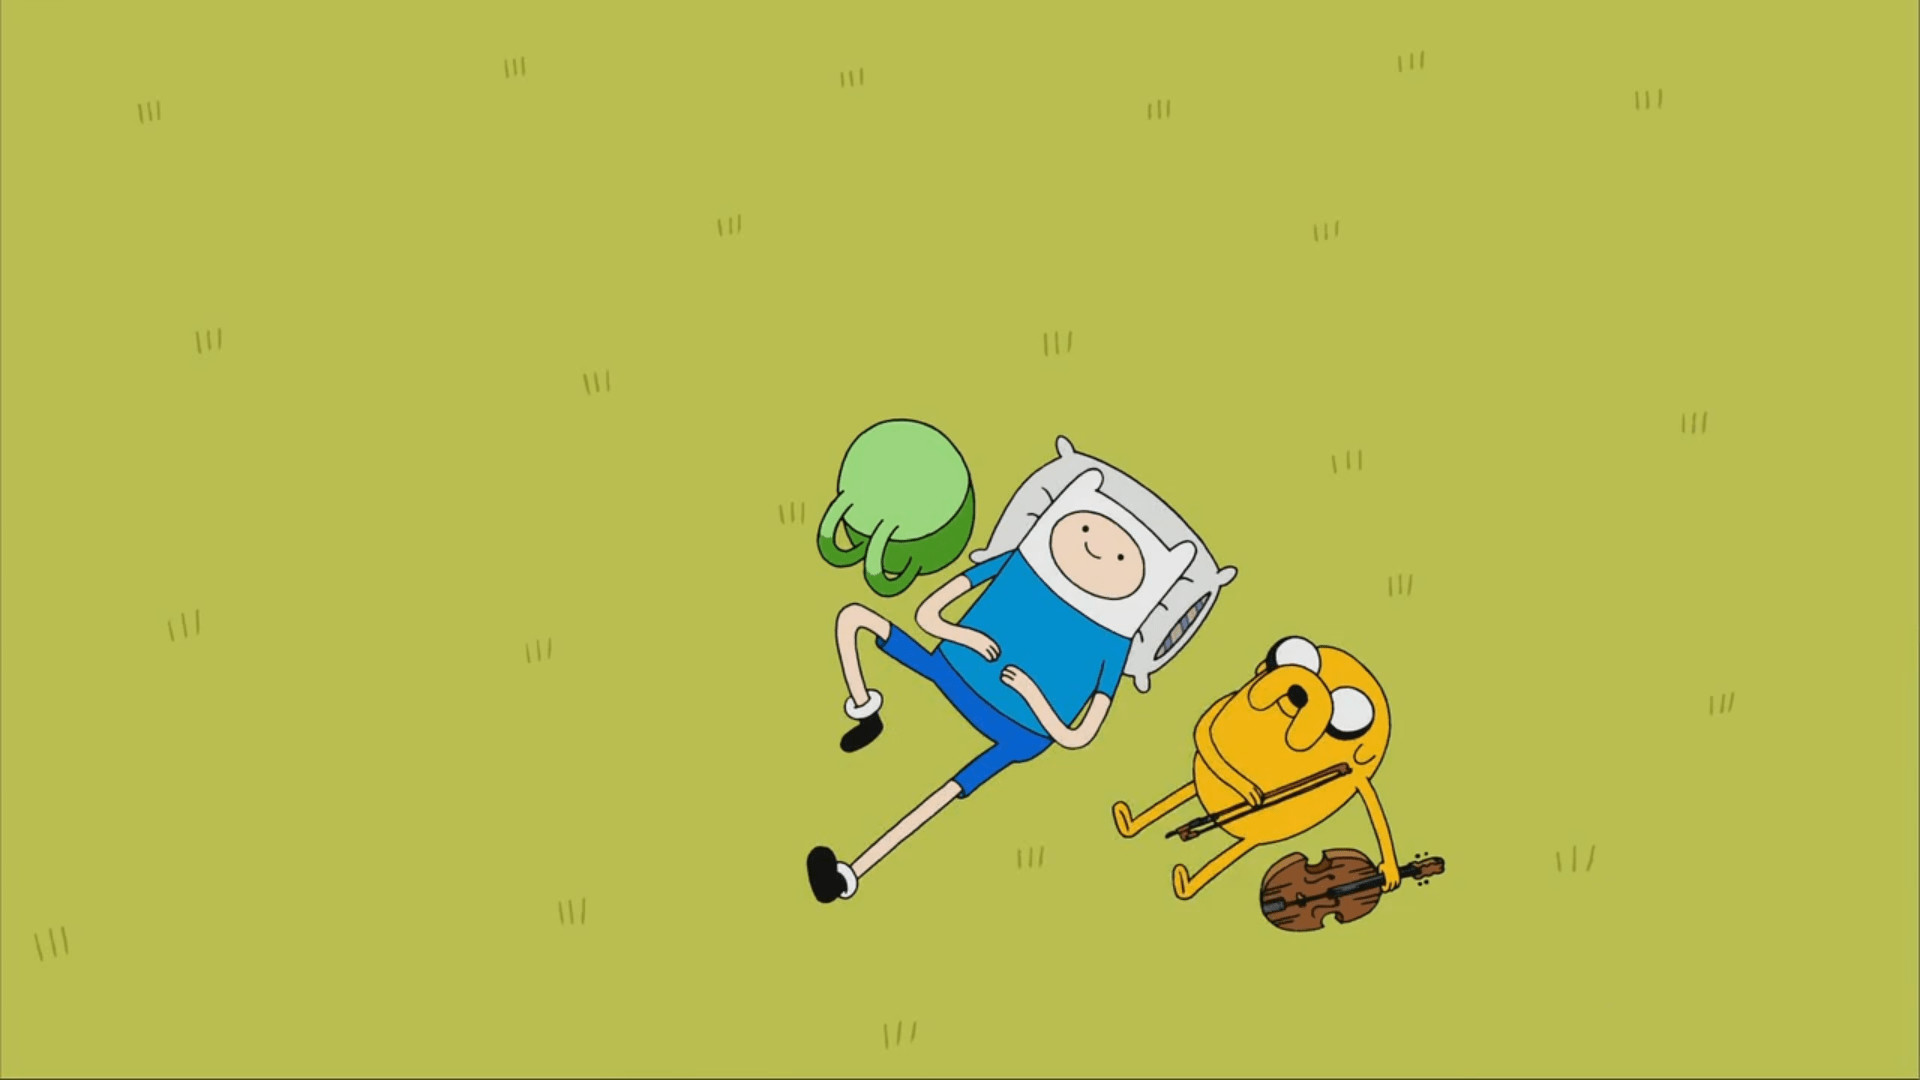 1920x1080 Jake the Dog Finn Adventure Time 1080p HD Wallpaper Background